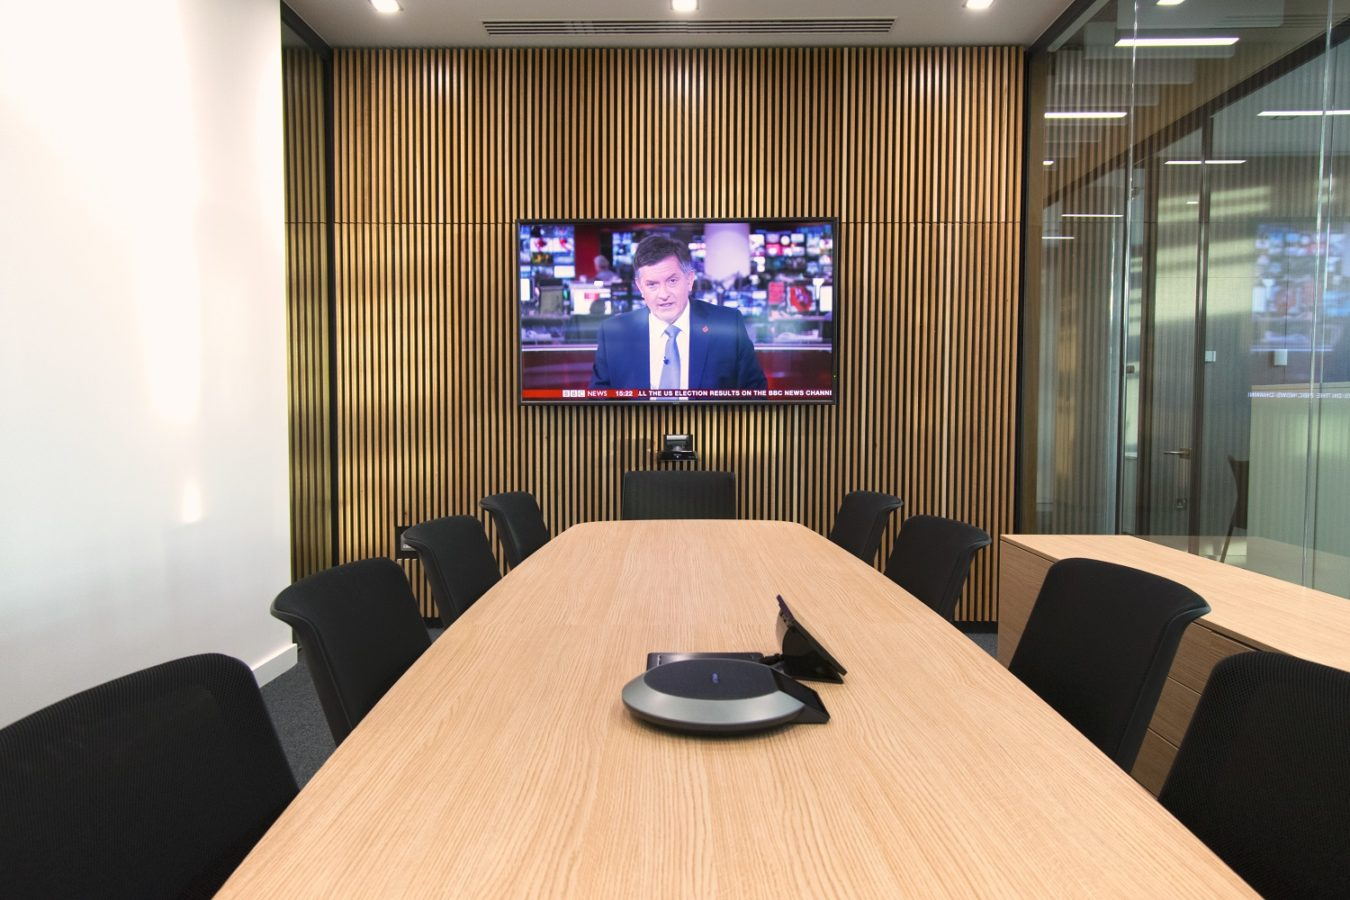 Corporate Meeting Room Audio Visual Systems